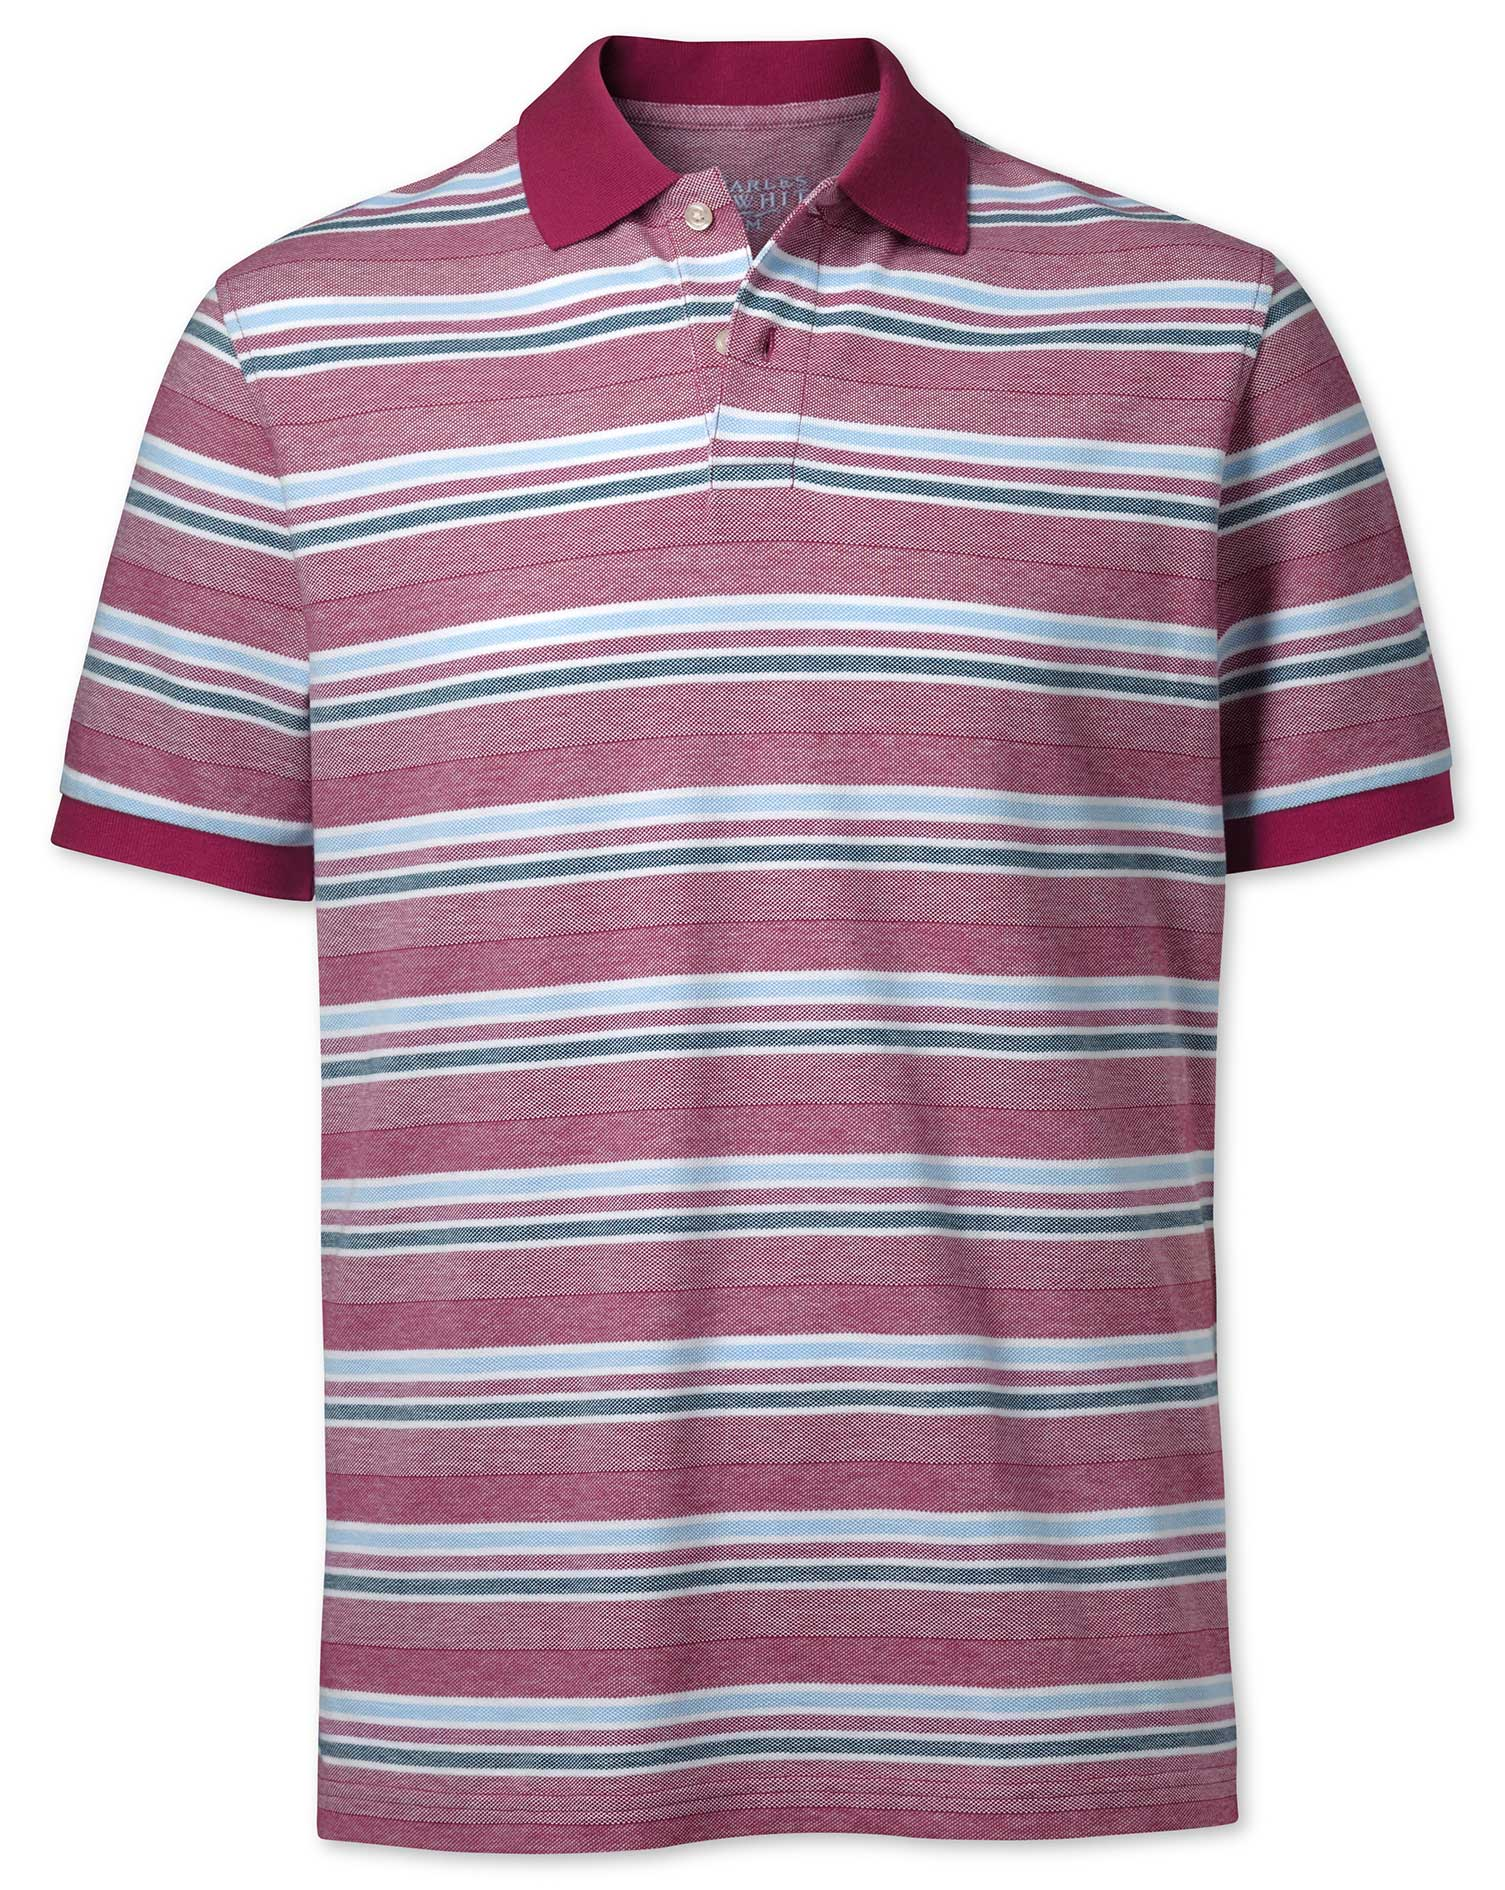 Image of Charles Tyrwhitt Berry Textured Striped Polo Size Large by Charles Tyrwhitt